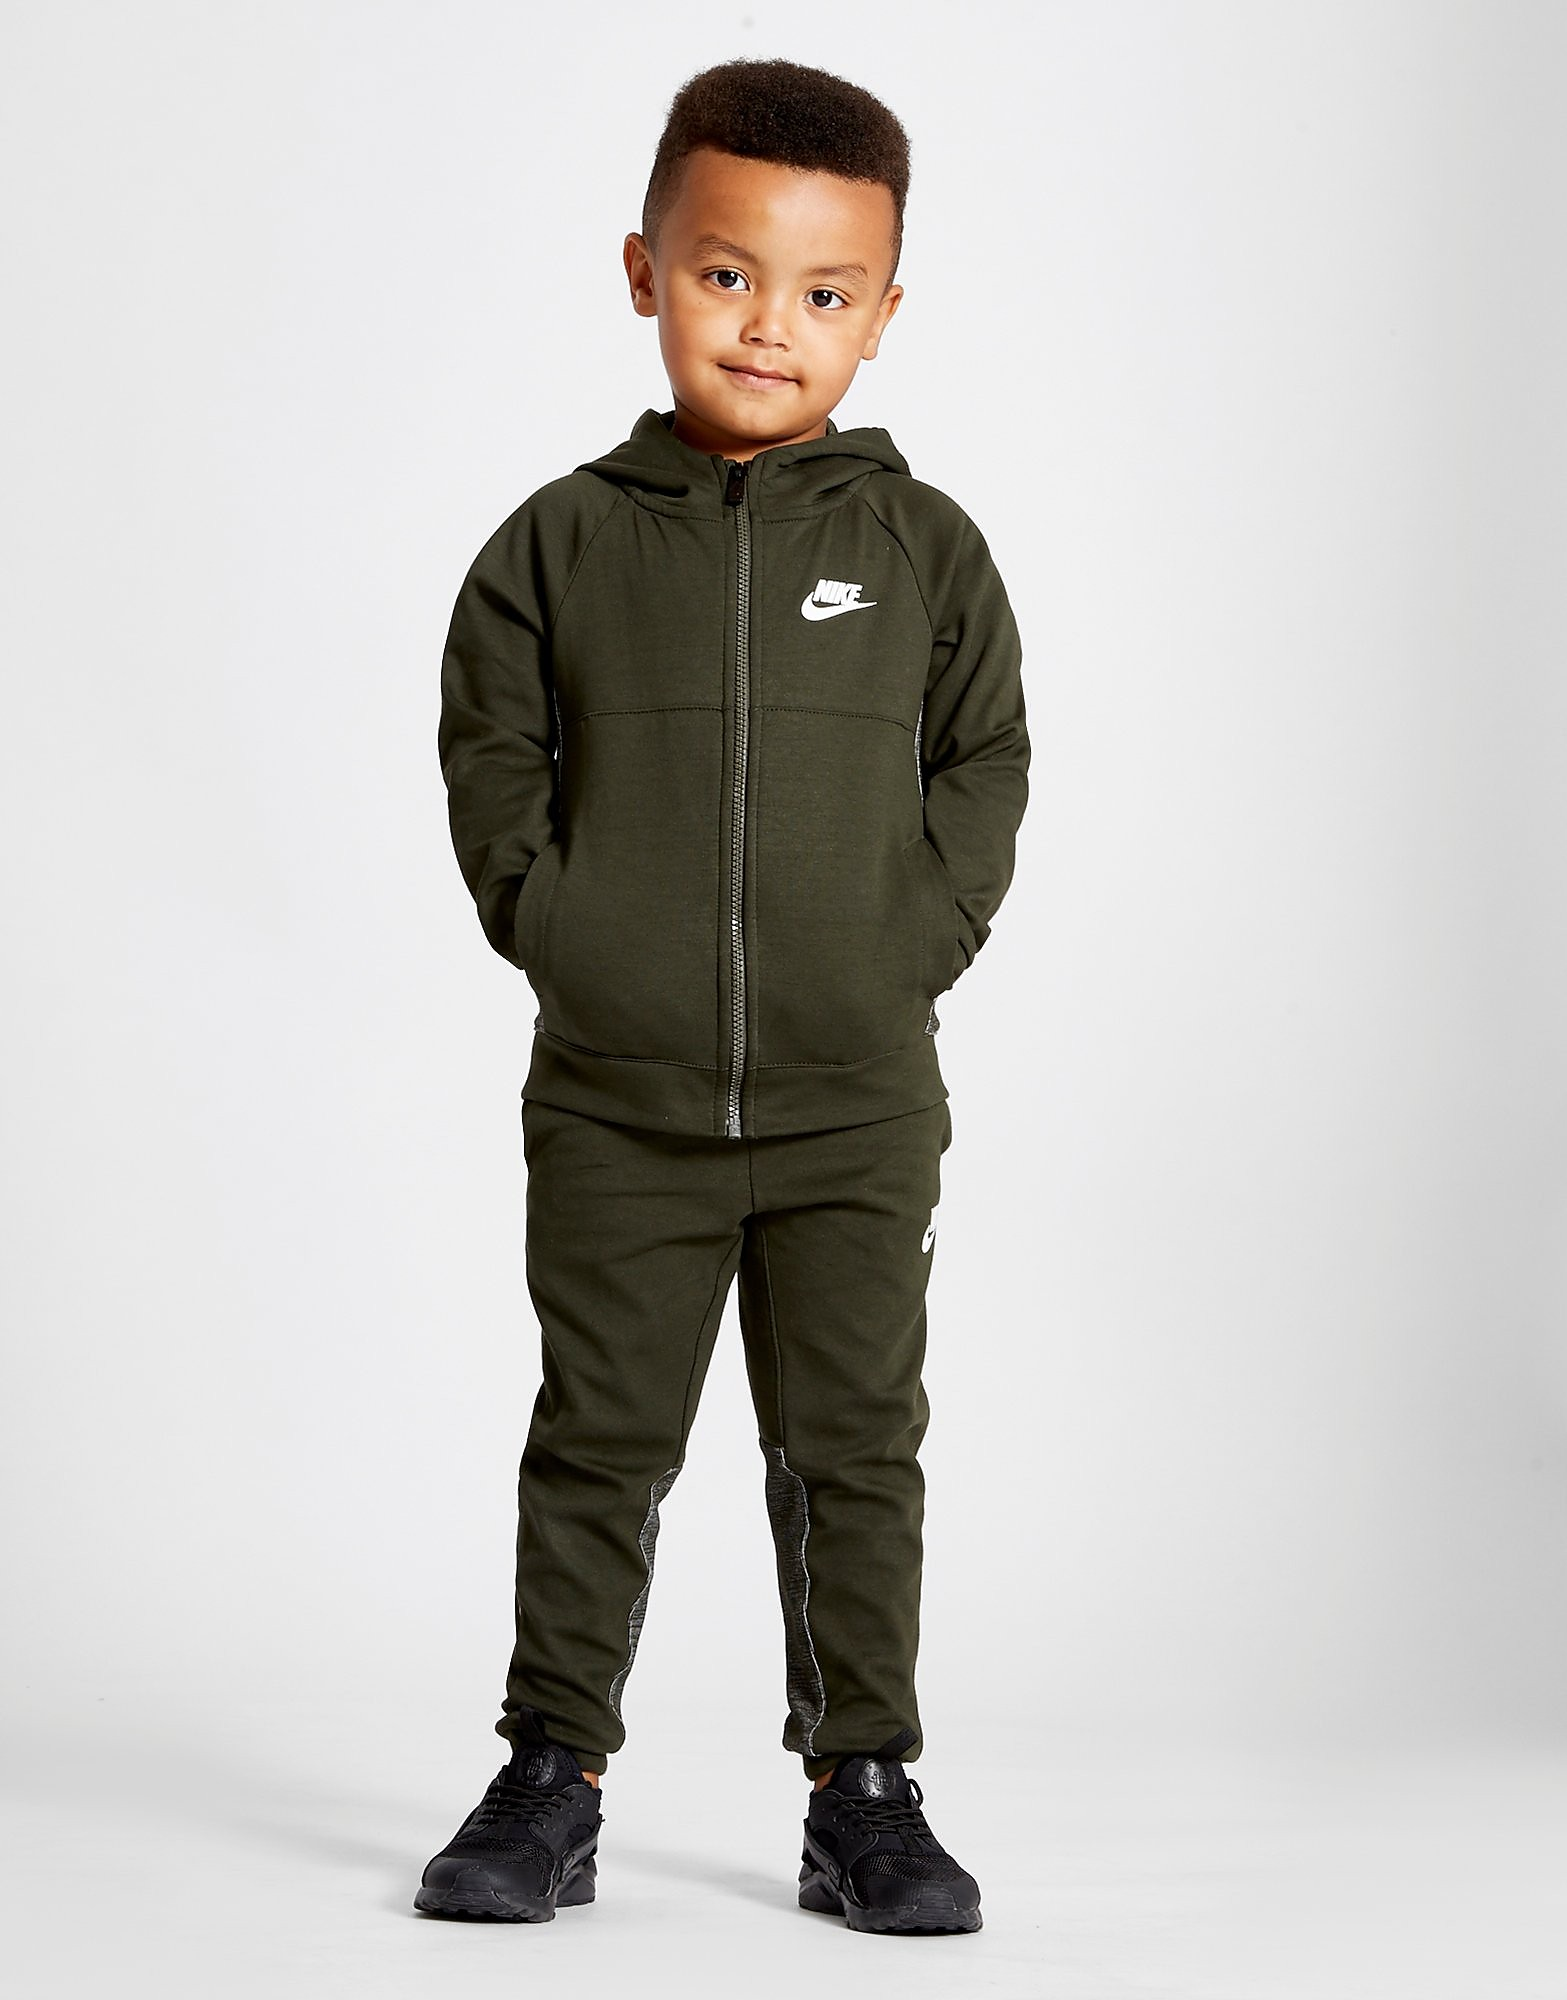 Nike Advance Full Zip Suit Children